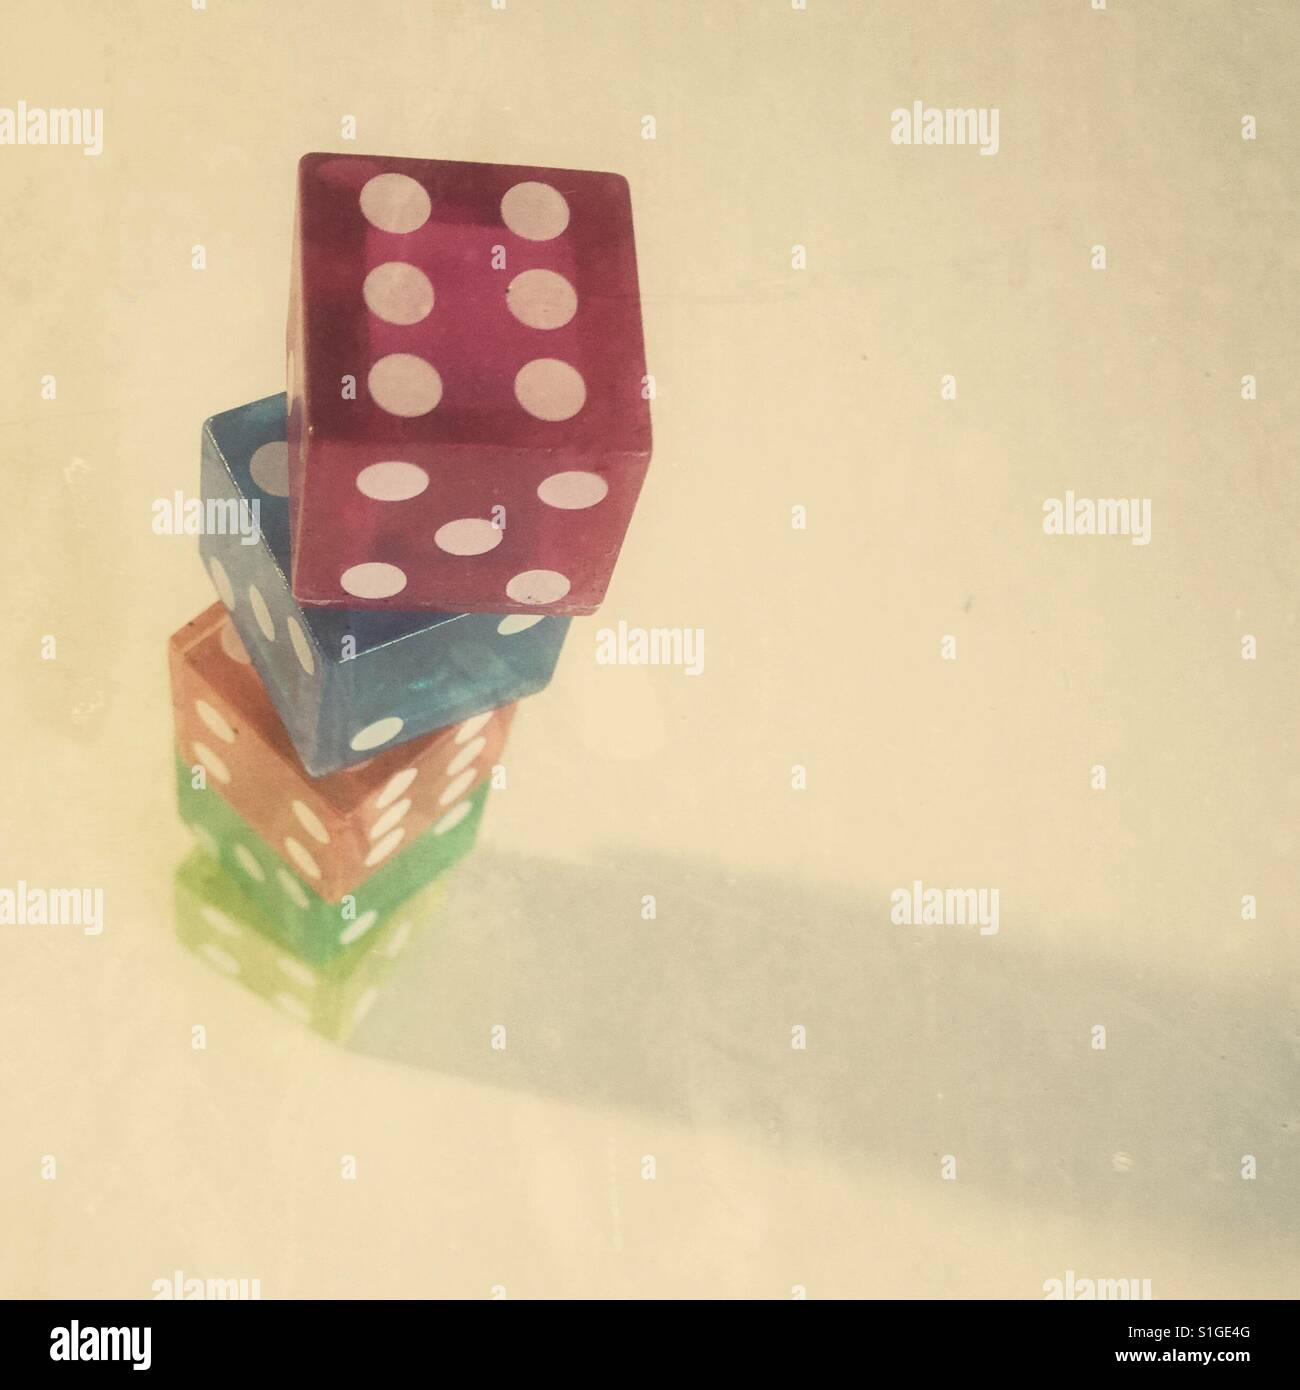 Tower of dice - Stock Image